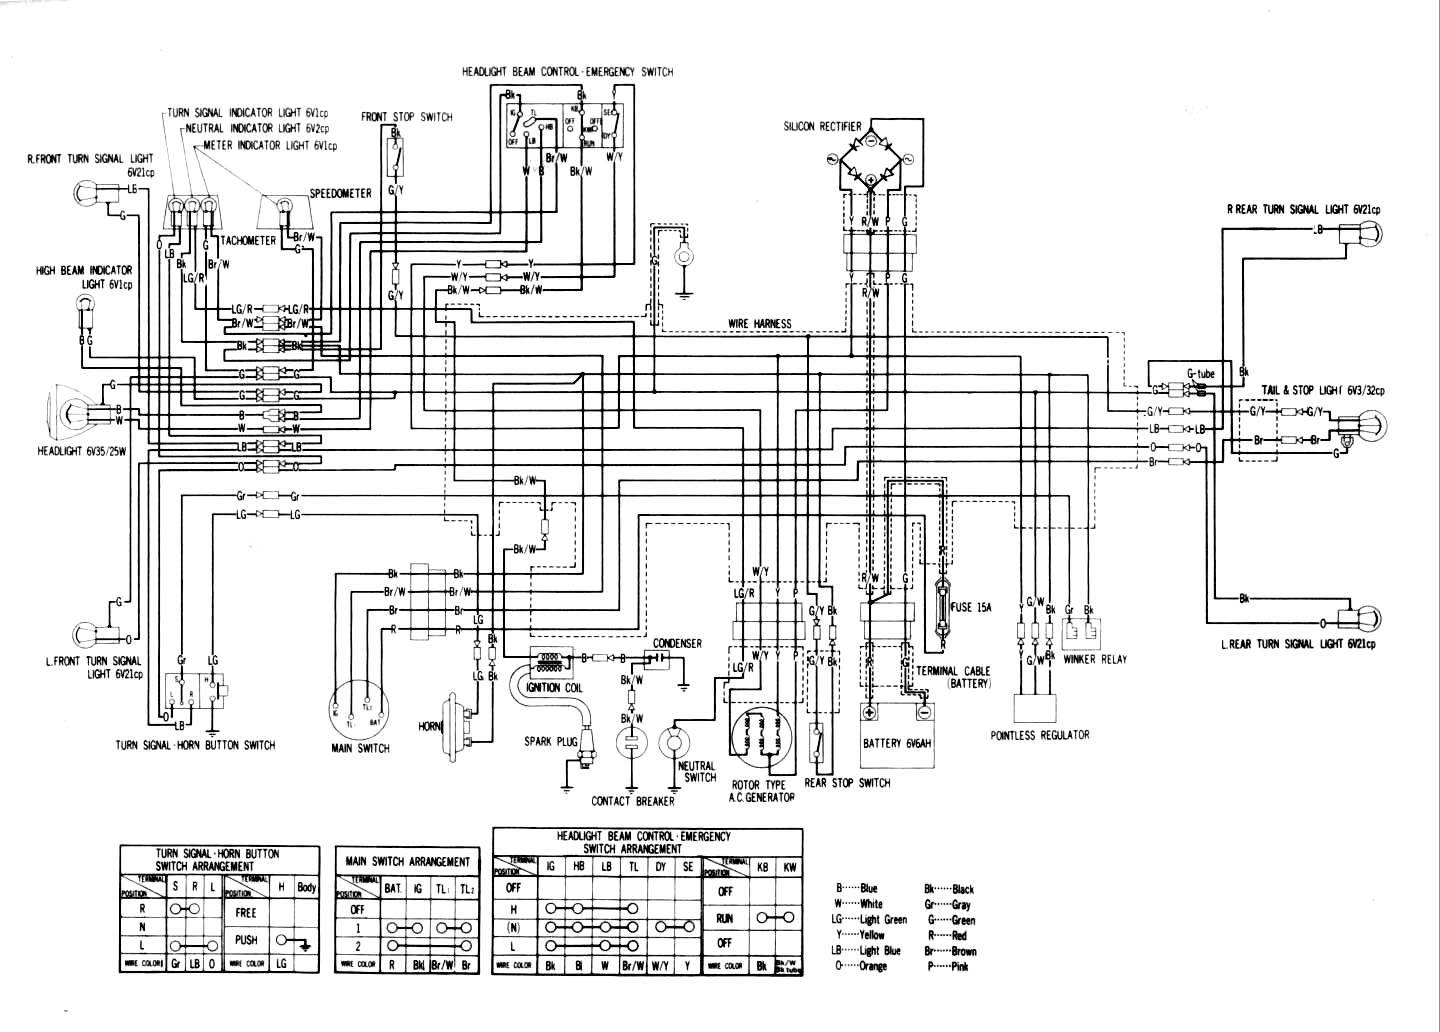 Wiring Diagram Honda 250xl Page 3 And Schematics Beat Xl250r Complete Diagrams Source Free About